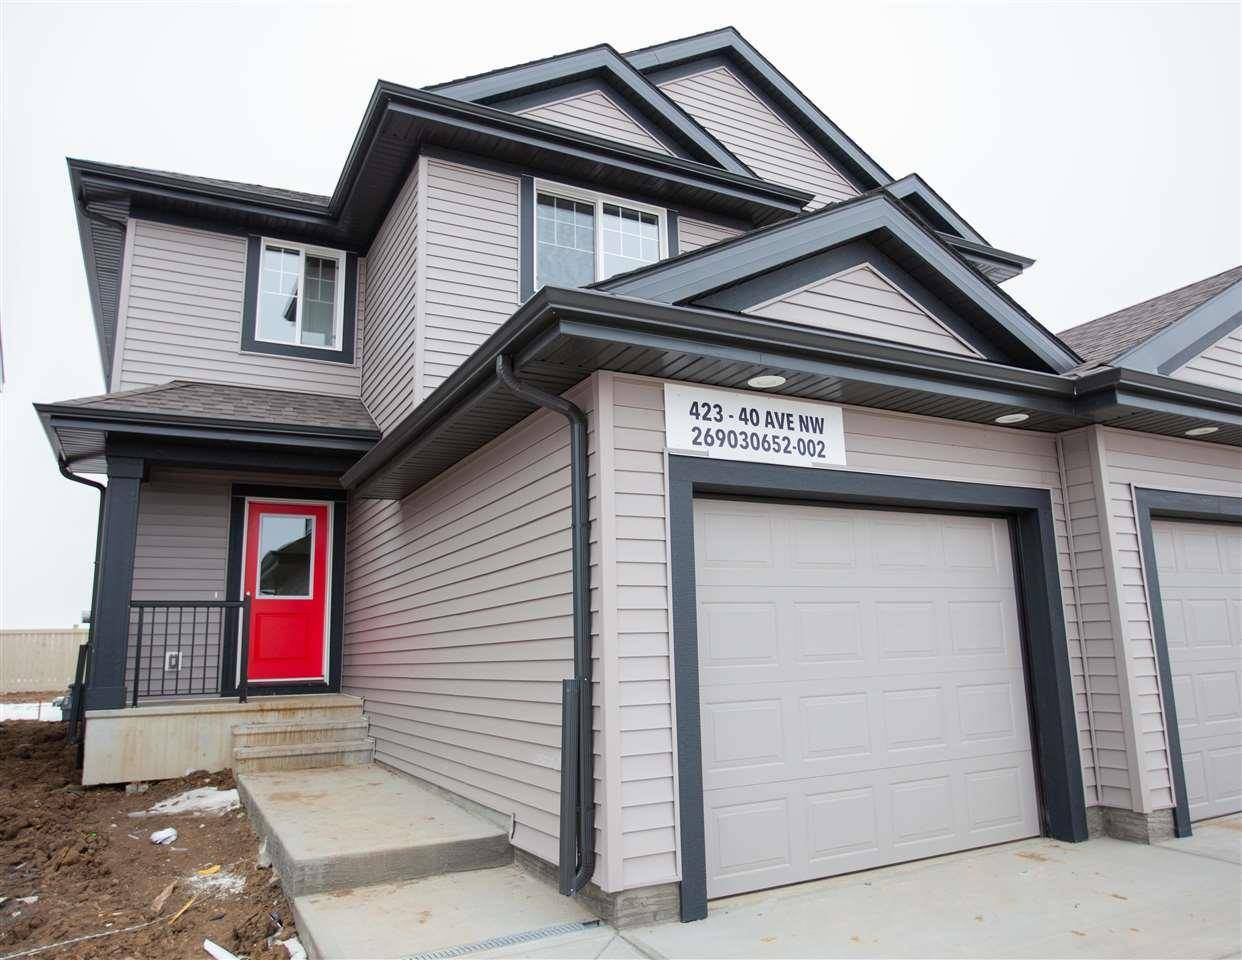 Townhouse for sale at 423 40 Ave Nw Edmonton Alberta - MLS: E4175694